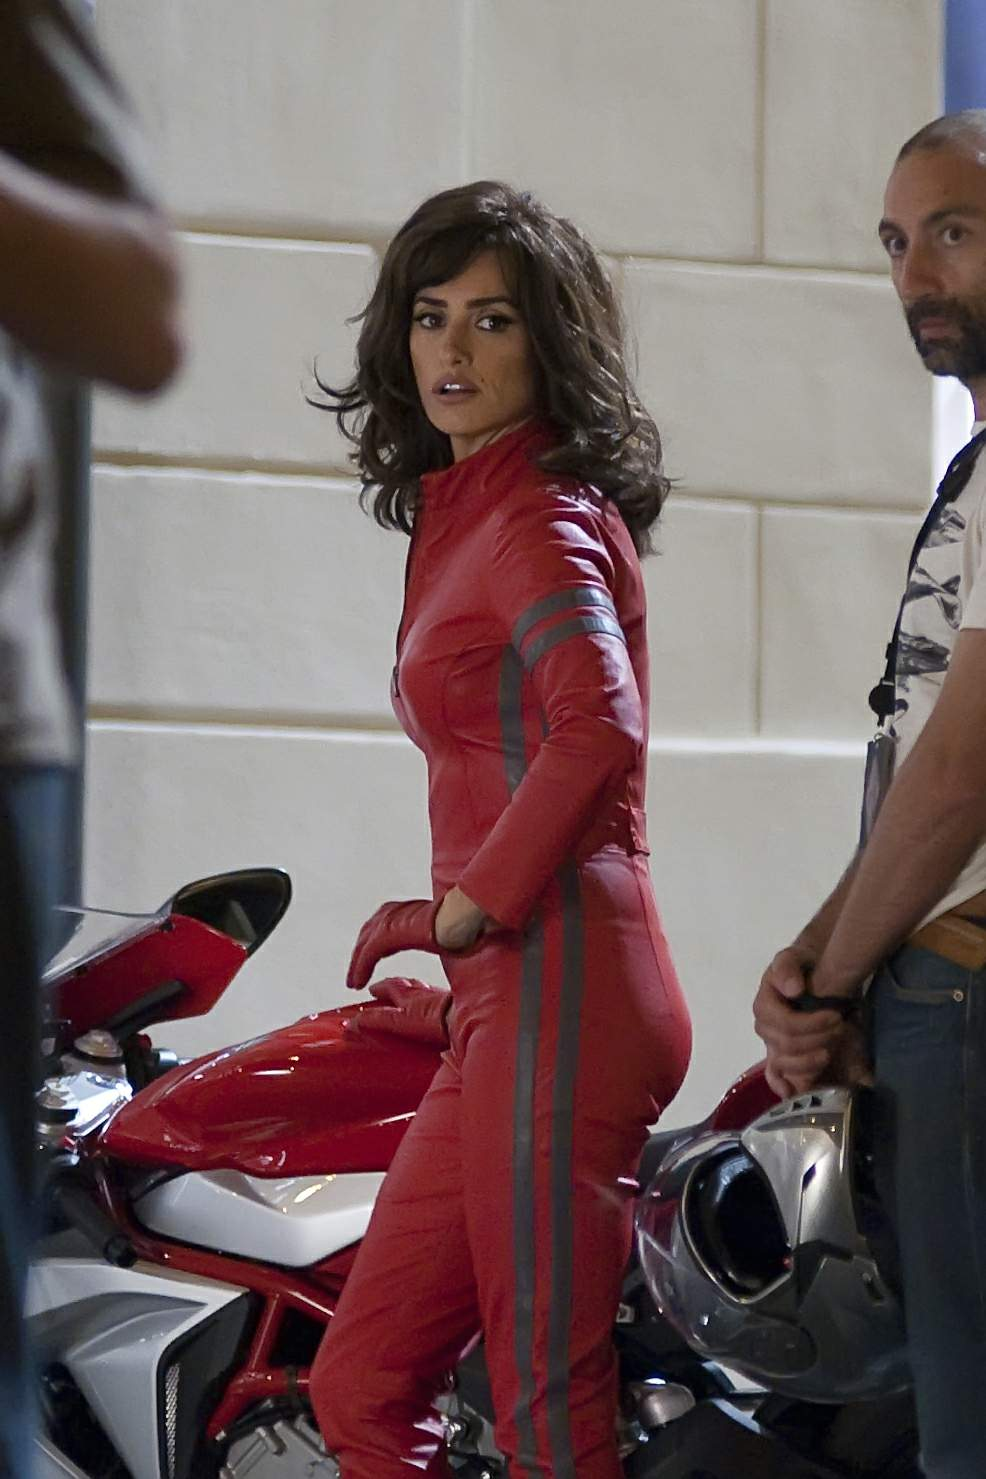 Penelope Cruz Filming scenes for Zoolander 2